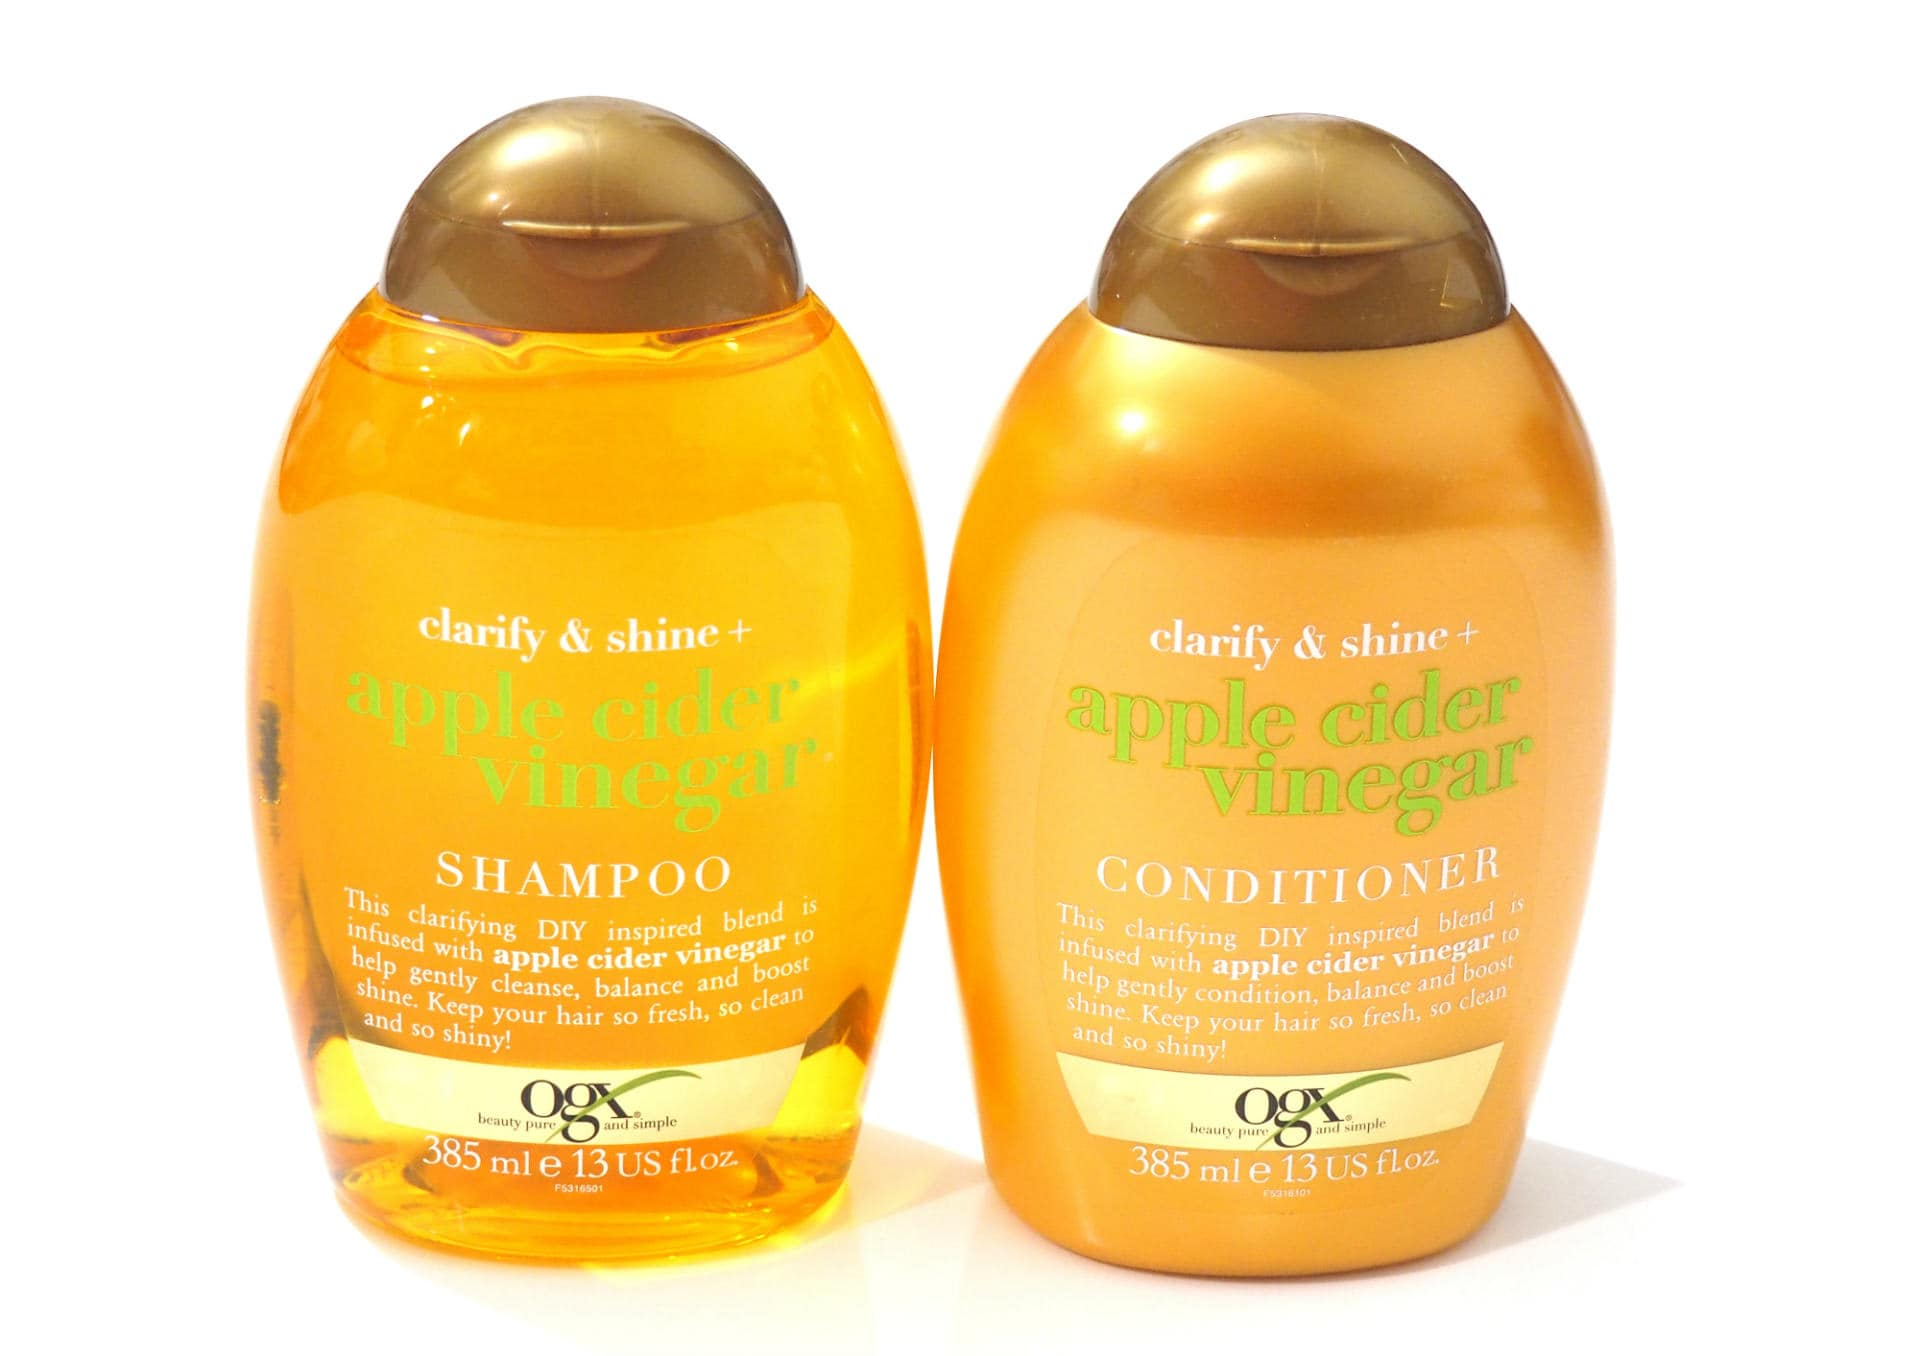 OGX Apple Cider Vinegar Shampoo and Conditioner